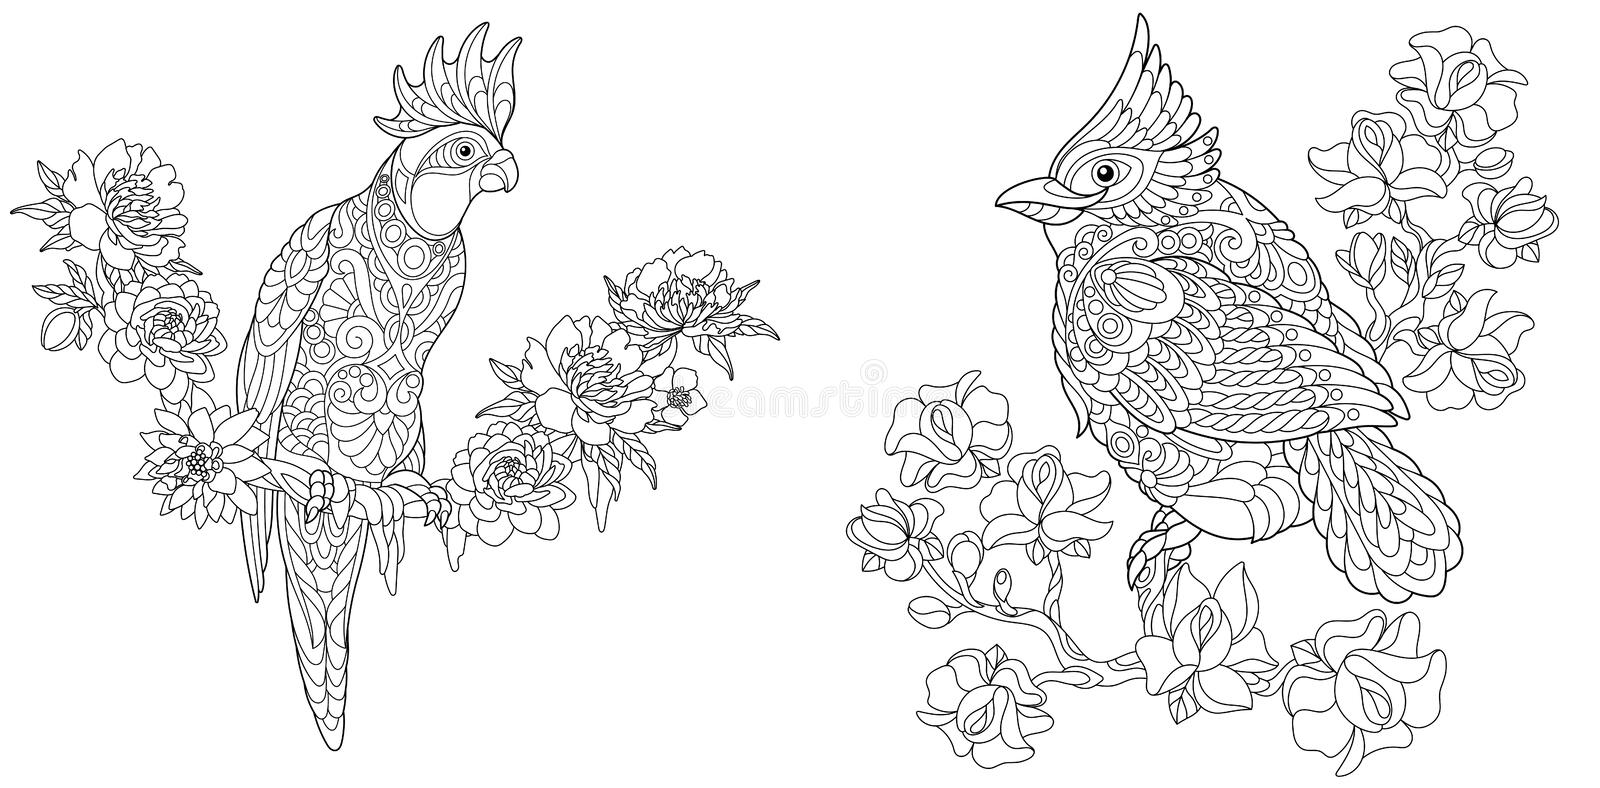 Coloring pages with cockatoo and cardinal. Coloring Pages. Coloring Book for adults. Colouring pictures with cockatoo and red cardinal bird. Antistress freehand royalty free illustration